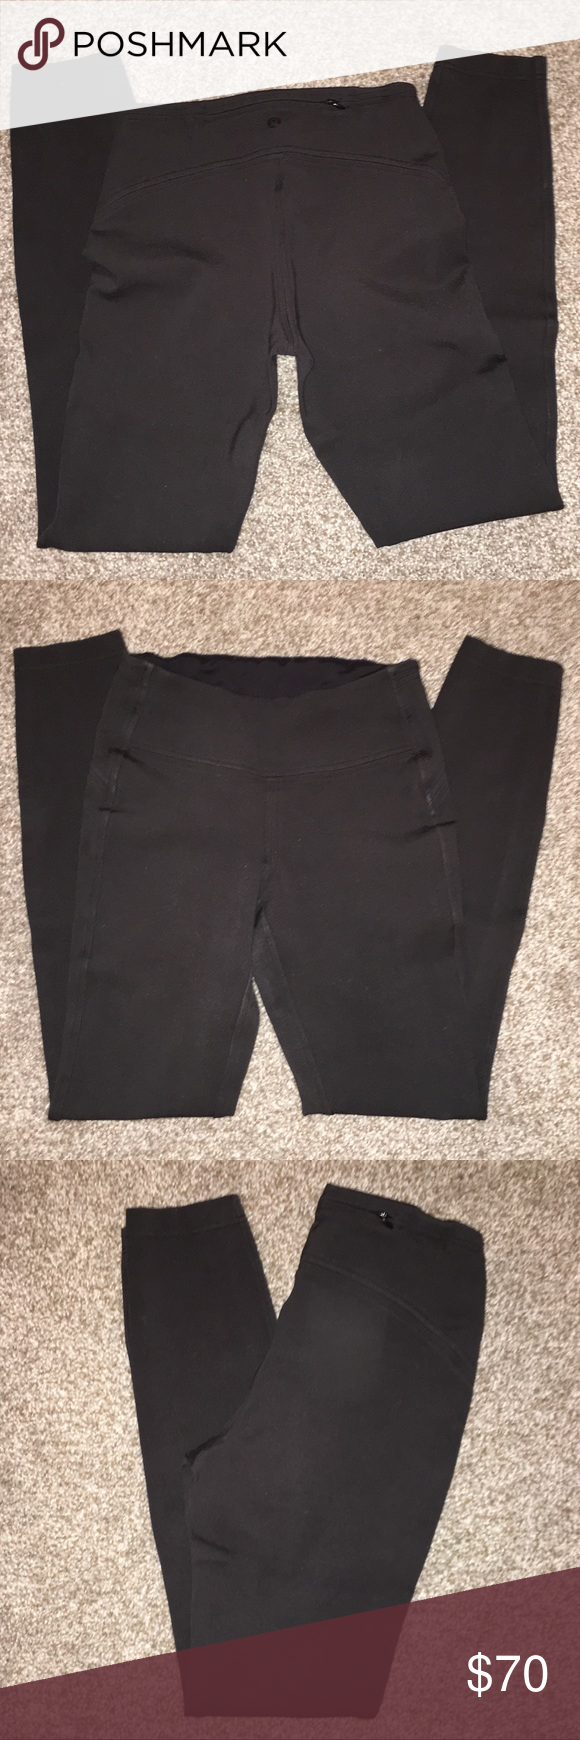 Women's Lululemon Black Pants In good used condition. Size: 4. These pants are great for a hike, a workout, or even to dress them up with heels. Zipper pocket on back. No piling. Some de-stitching on back on waist line. Not noticeable at all especially with covering of a shirt. Rare style. No longer available in stores or online.  ❗️ALWAYS OPEN TO REASONABLE OFFERS❗️  🎀BUNDLE FOR ADDITIONAL SAVINGS🎀 lululemon athletica Pants